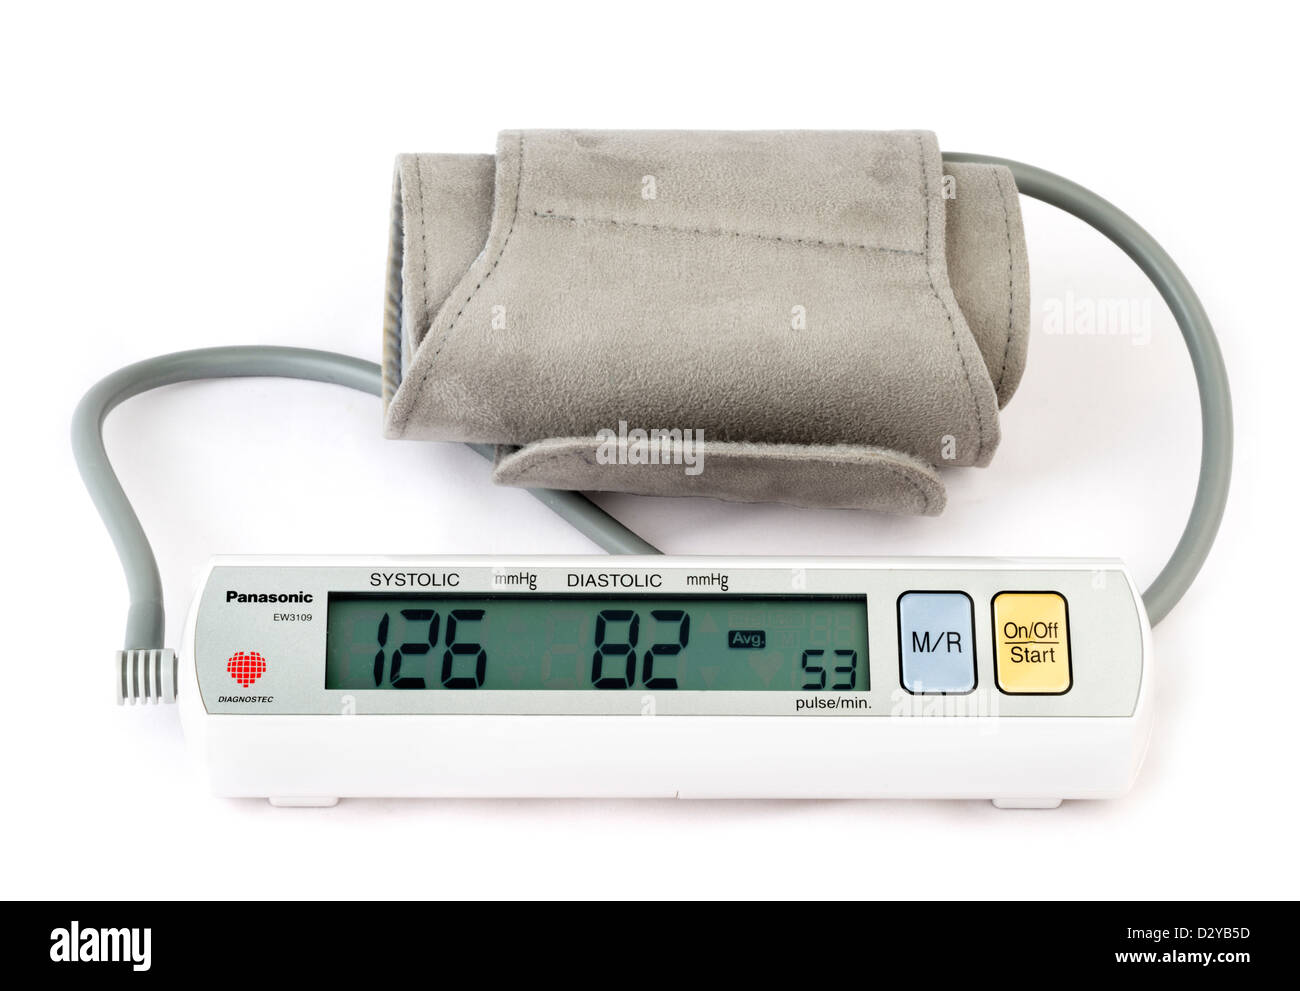 Panasonic battery operated home blood pressure monitor - Stock Image